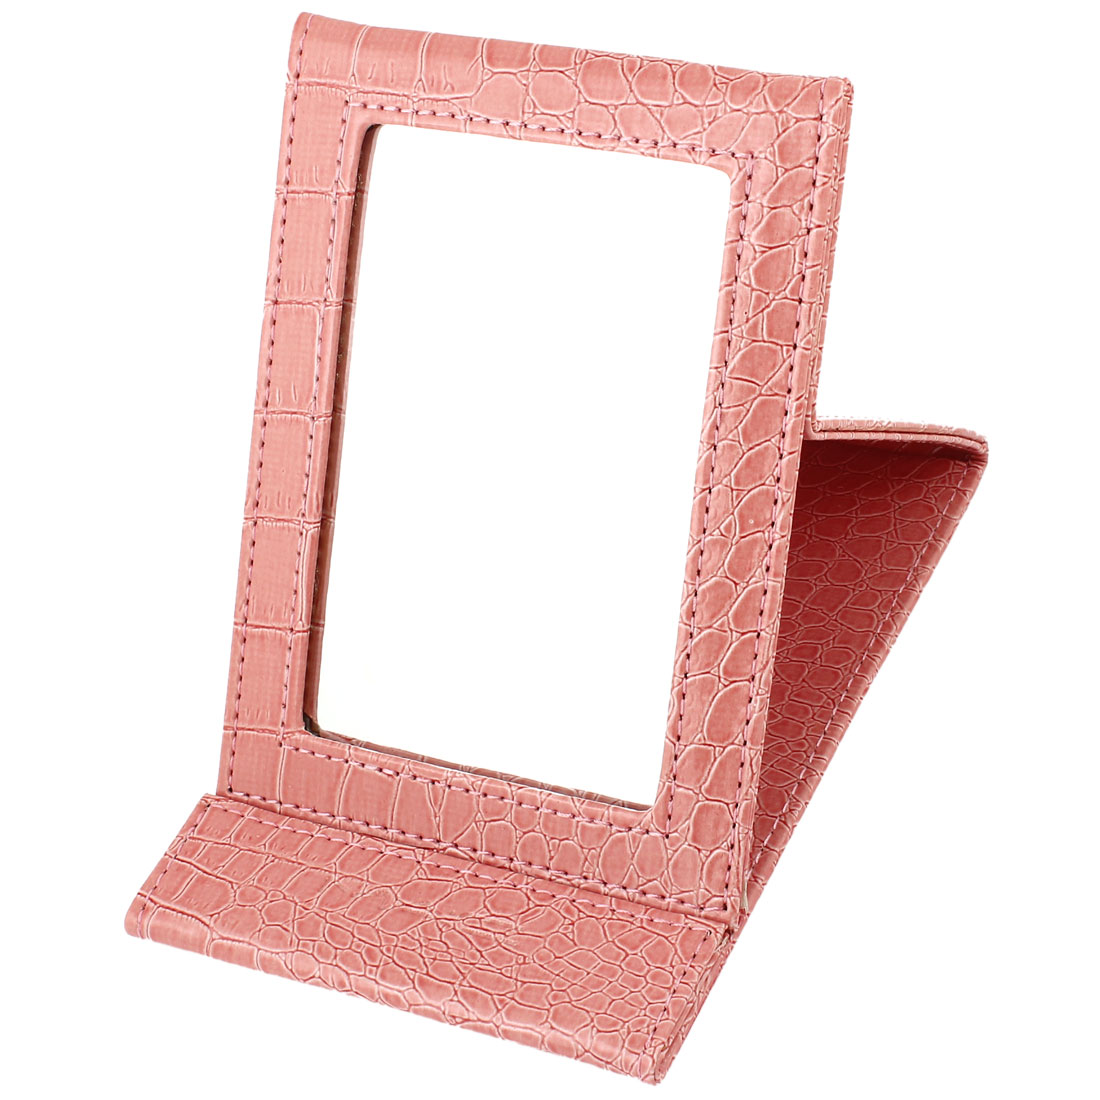 Rosybrown Alligator Print Faux Leather Coated Foldable Stand Makeup Mirror